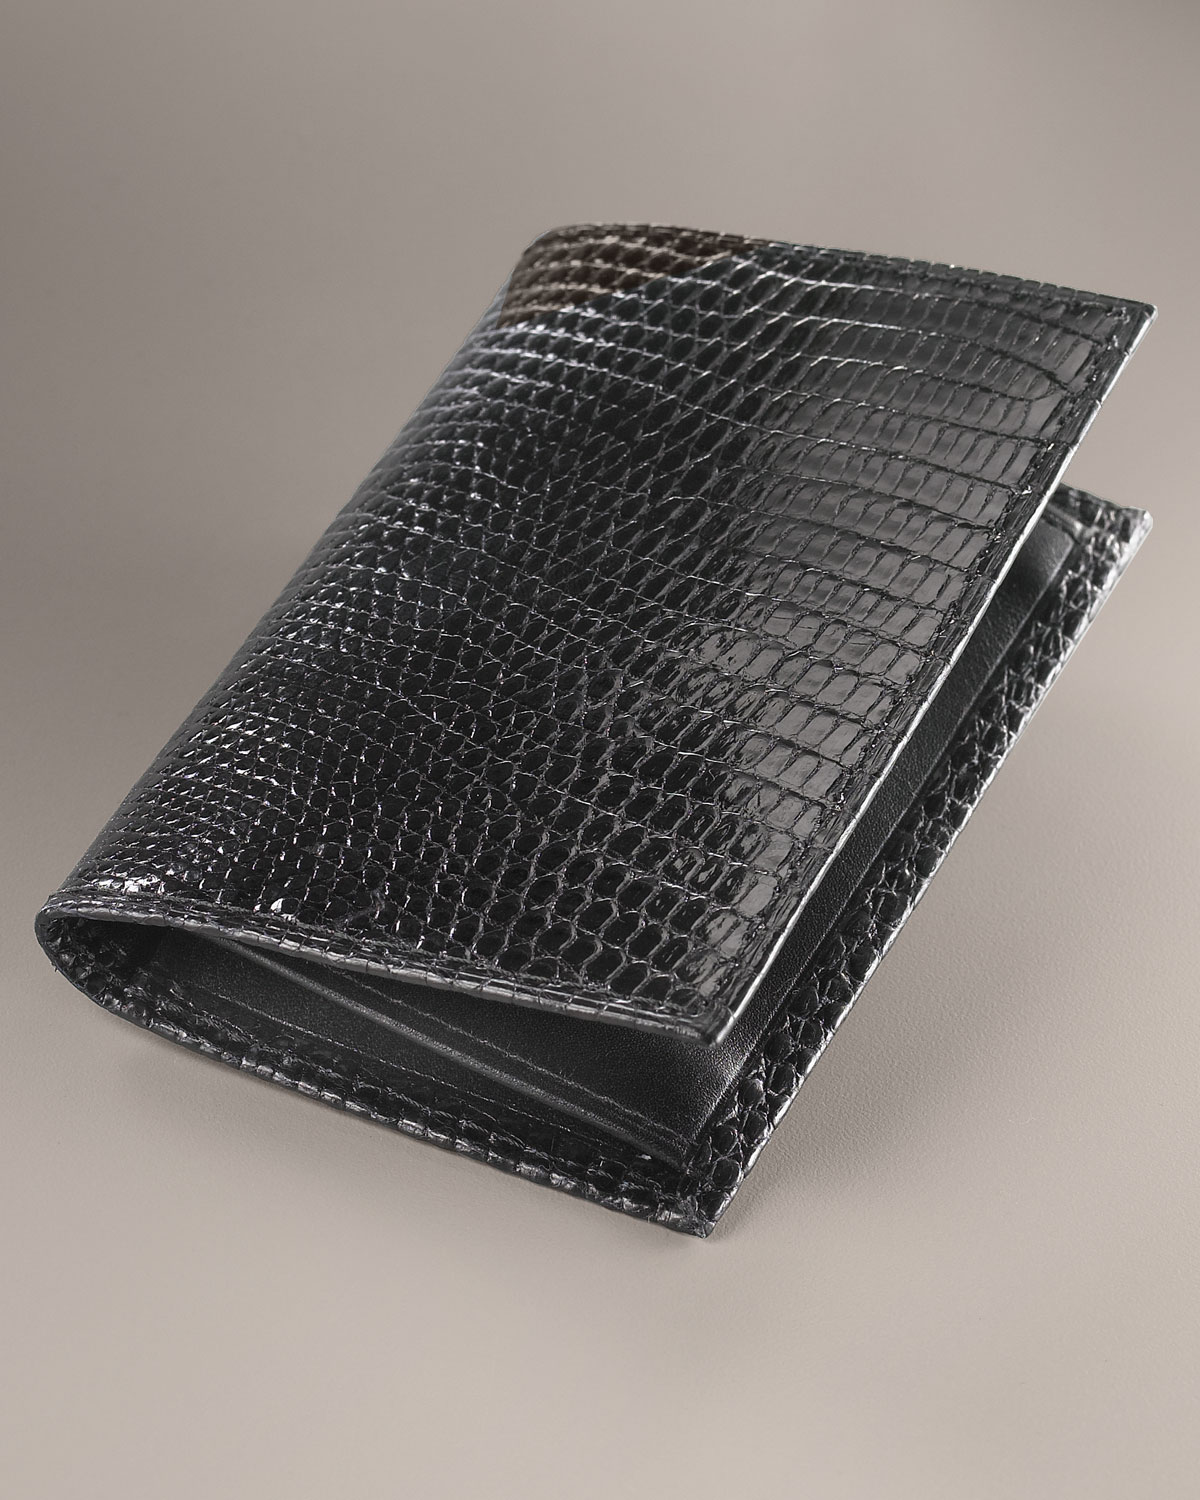 Lyst - Neiman Marcus Lizard Business Card Case in Black for Men